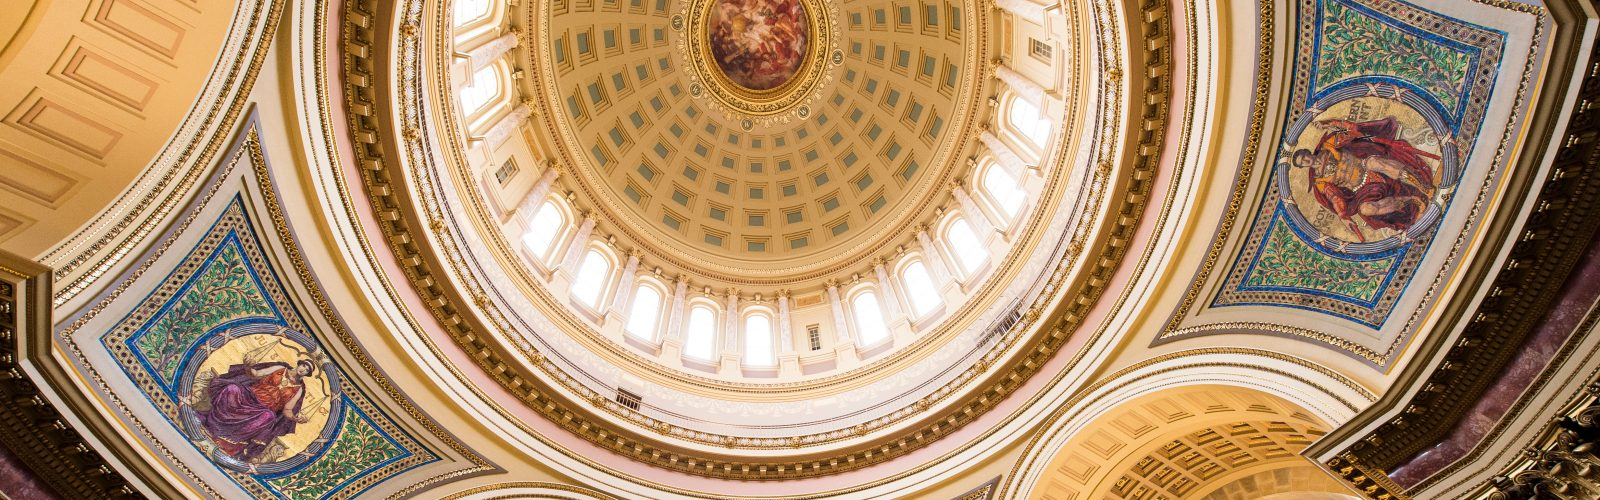 ornate ceiling of a government building_ become a social studies teacher at uw madison